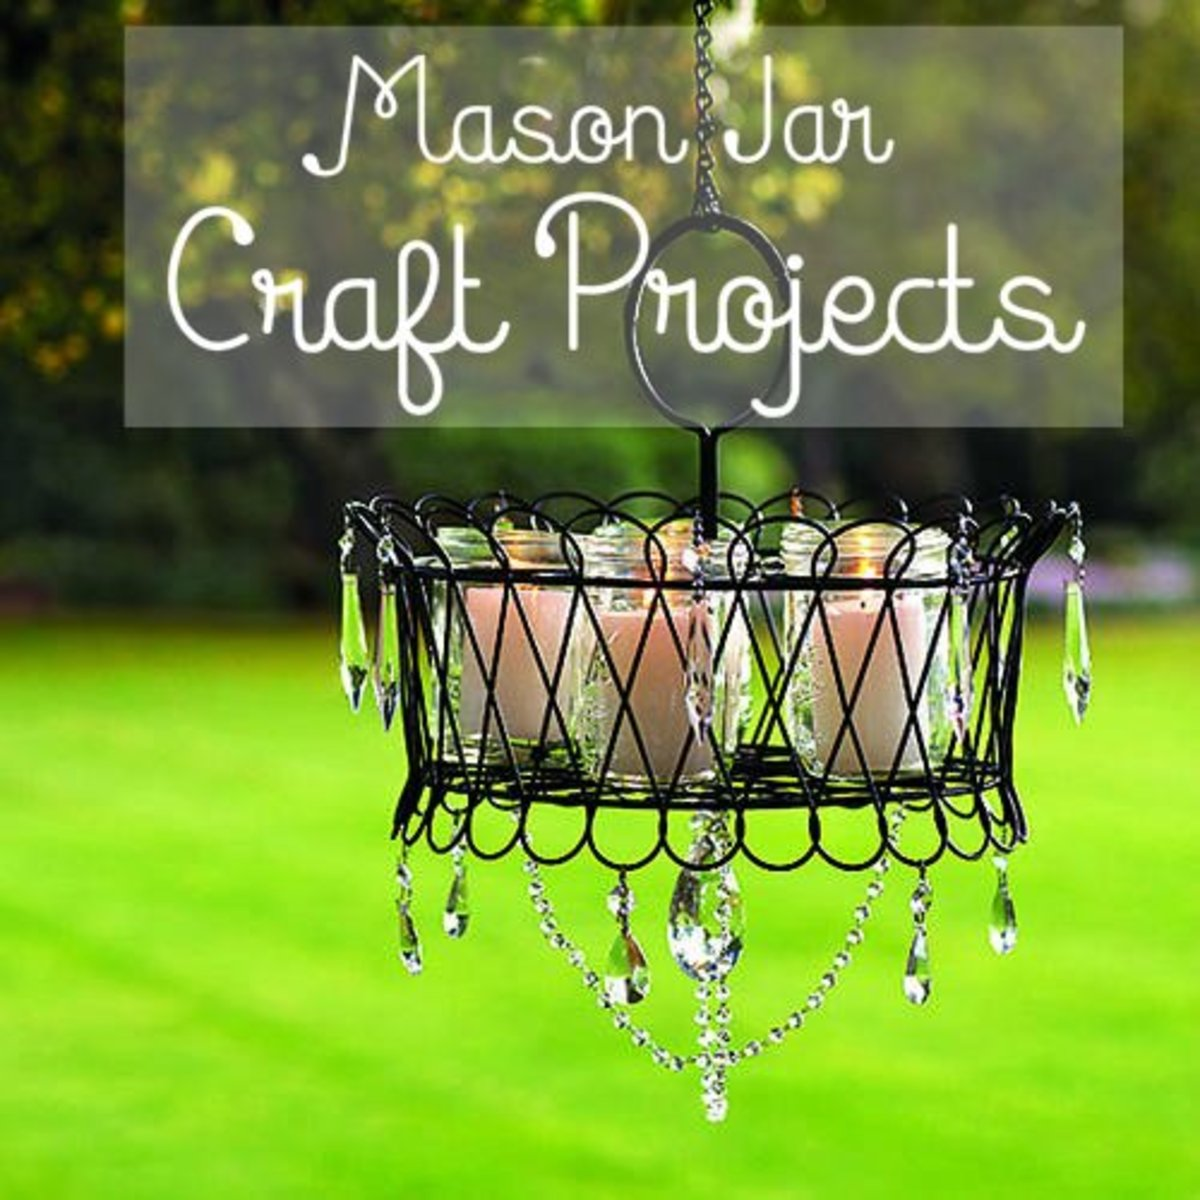 92 Outstanding Craft Projects Using Glass Jars